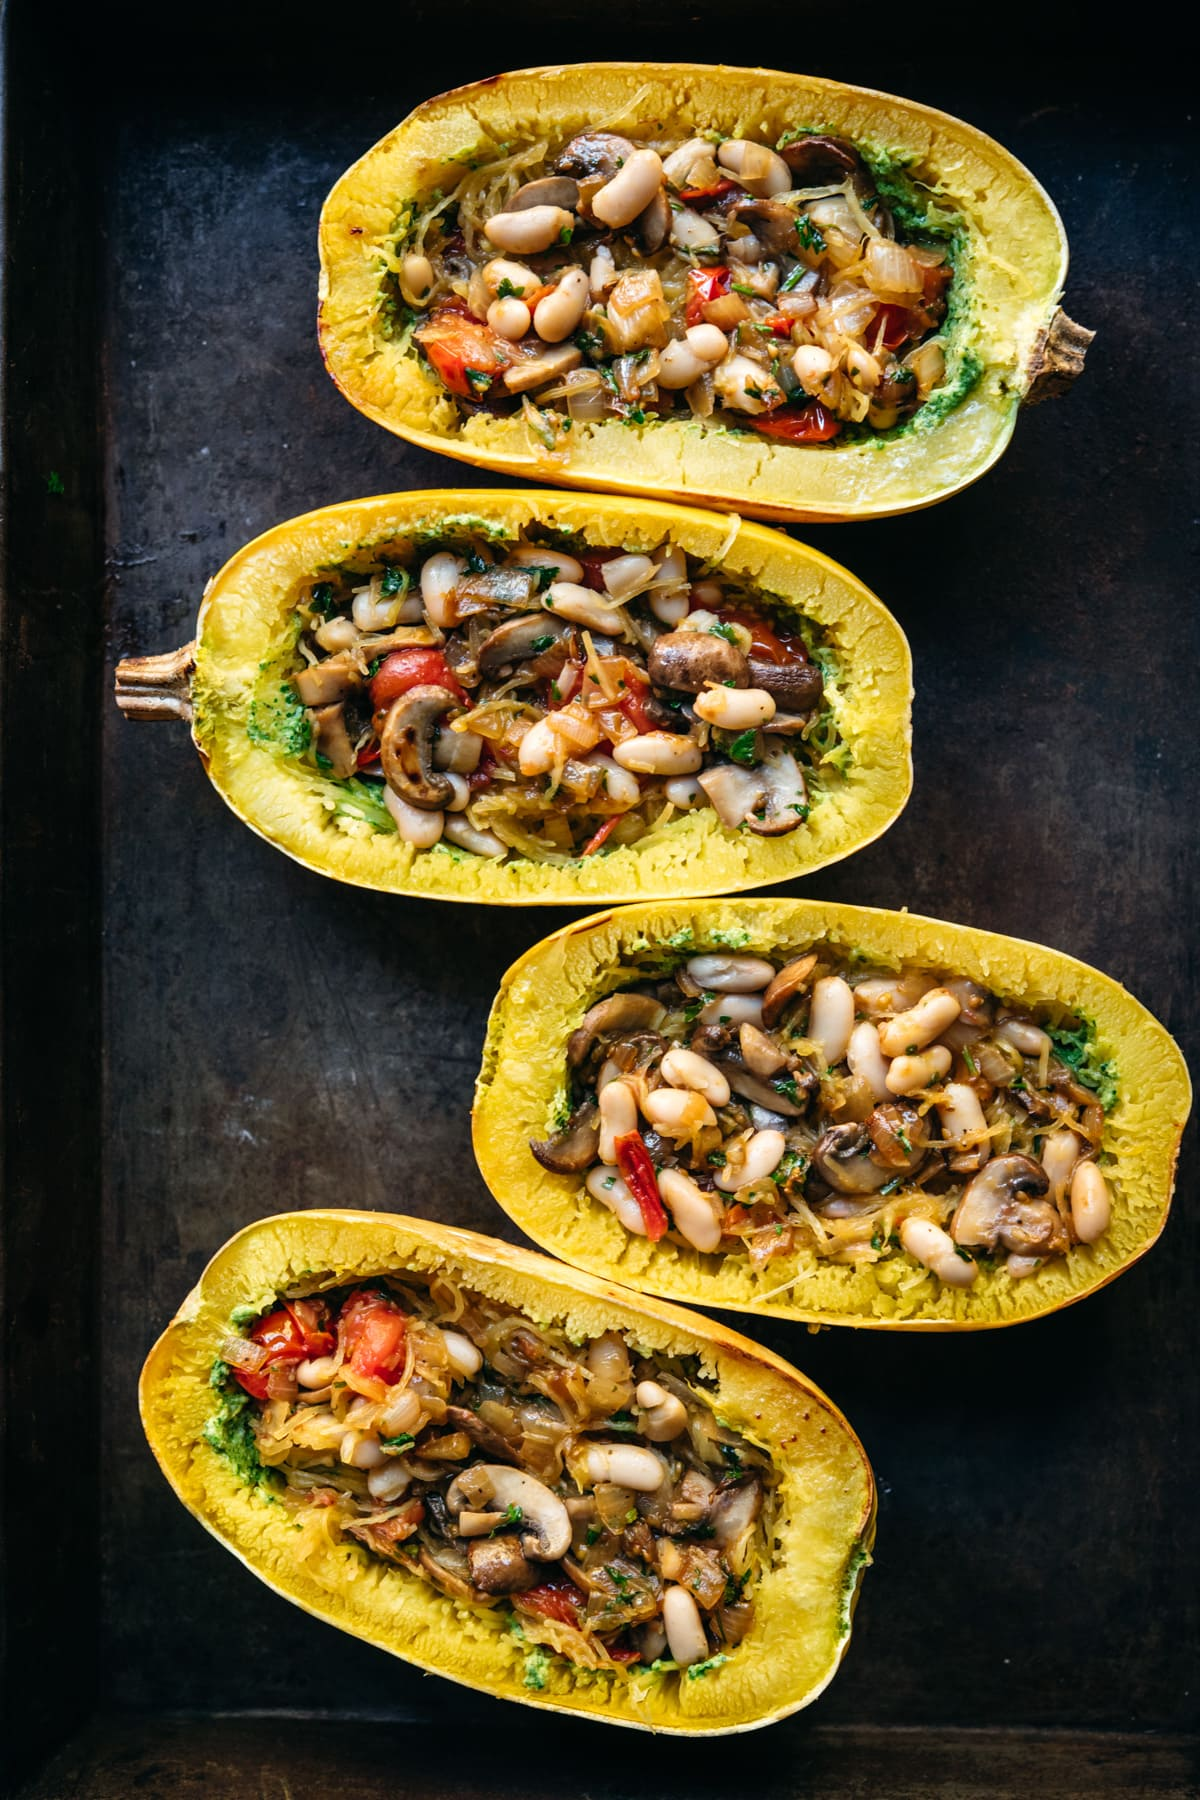 Four spaghetti squash filled with white beans, mushrooms and tomatoes.